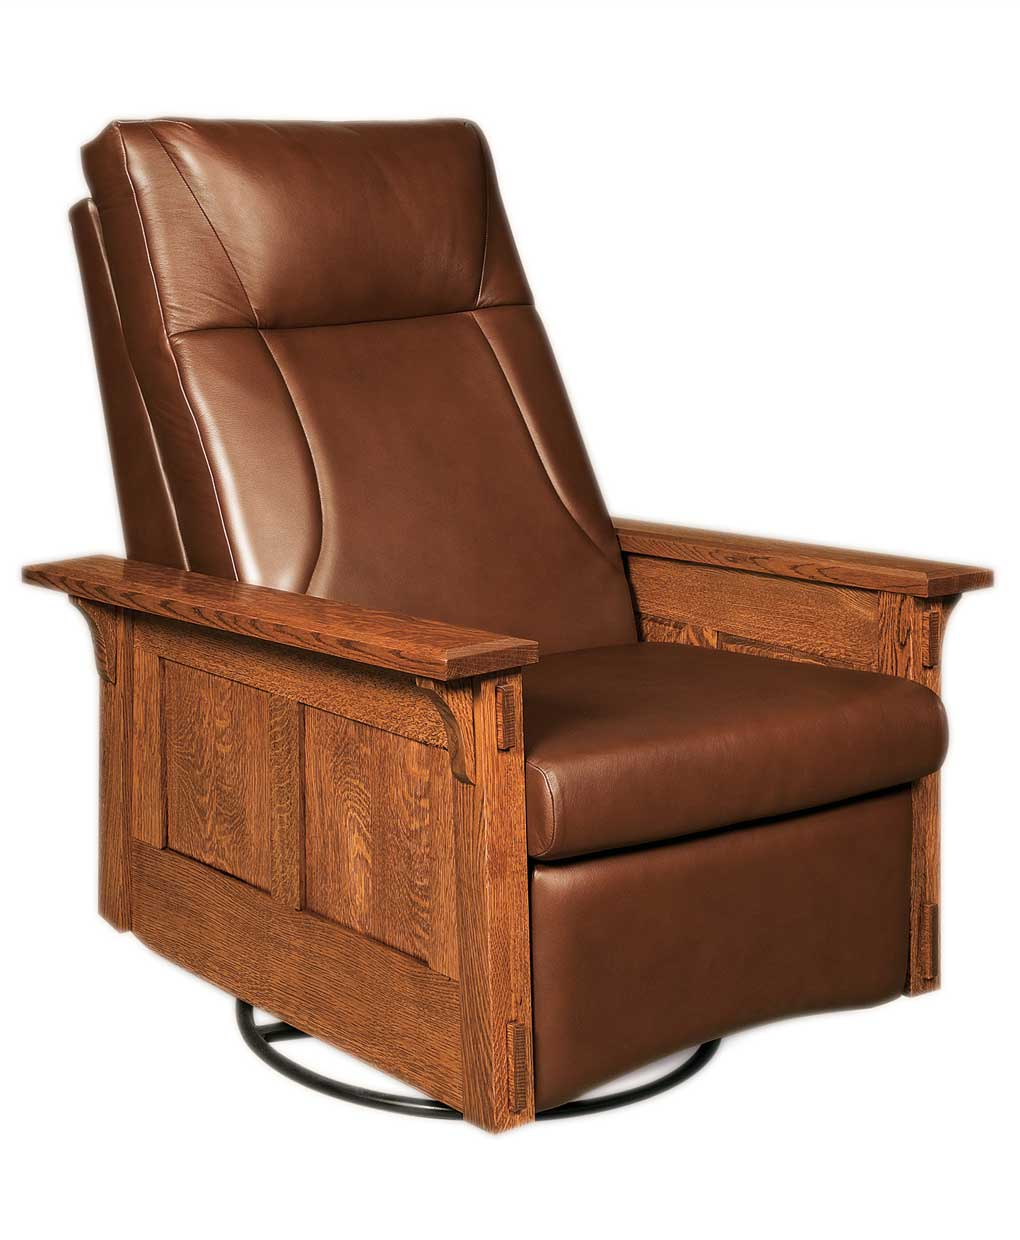 Mccoy Rocker Recliner Swivel Amish Direct Furniture